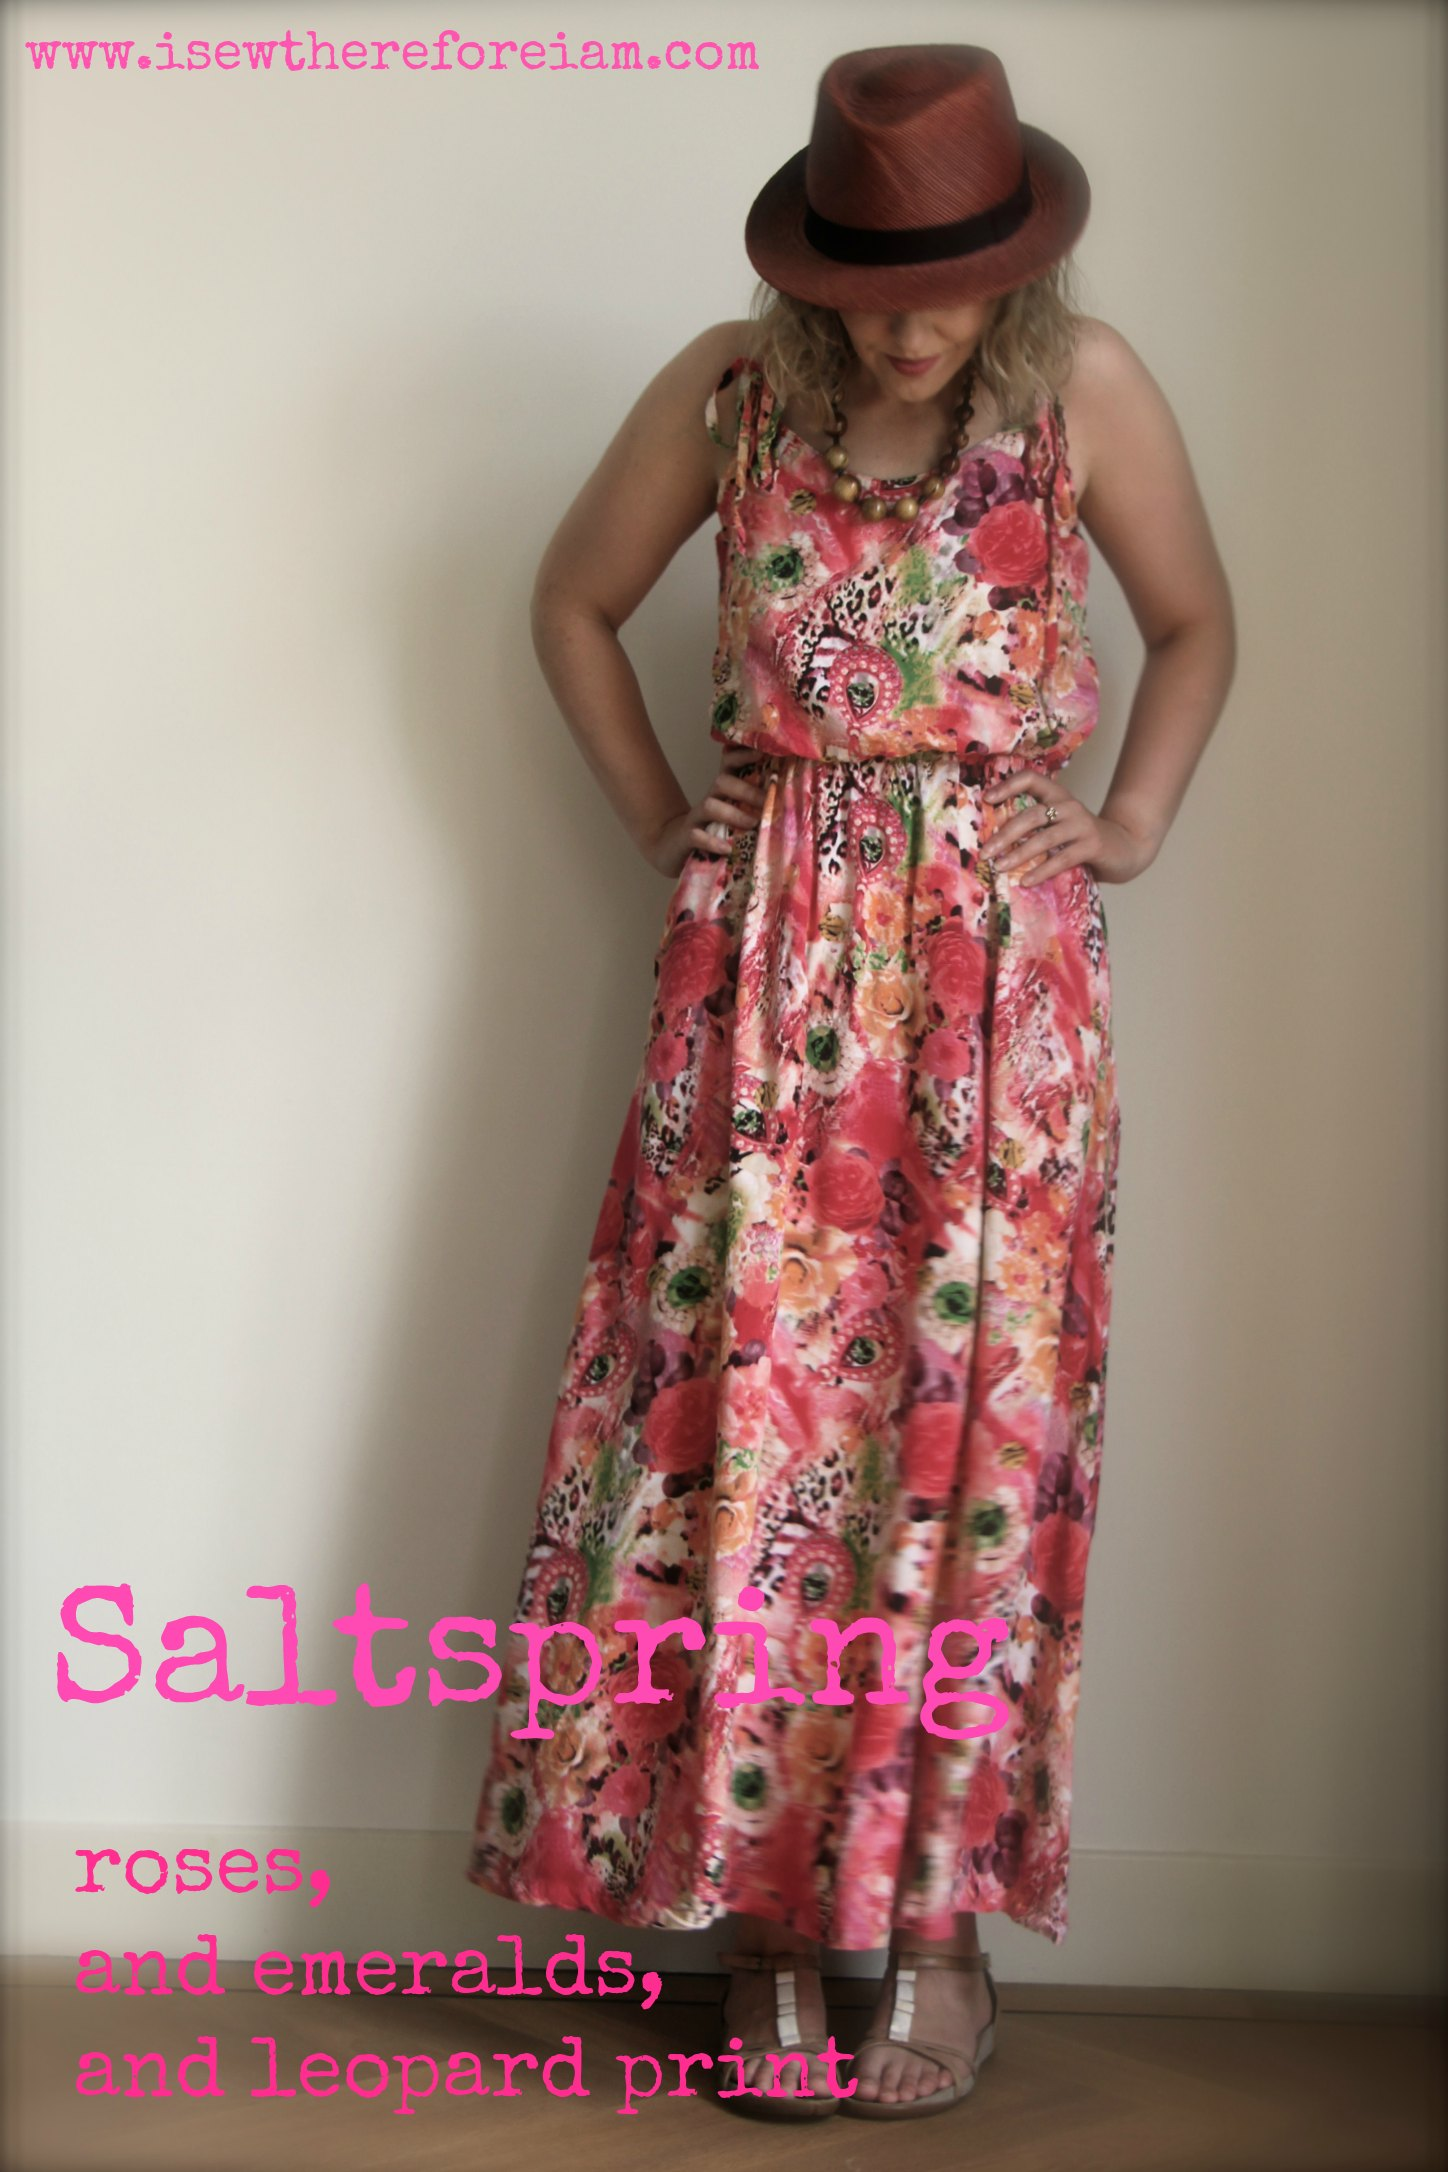 Sewaholic Saltspring is a great maxi dress pattern for beginners. Made up in a digitally printed rayon